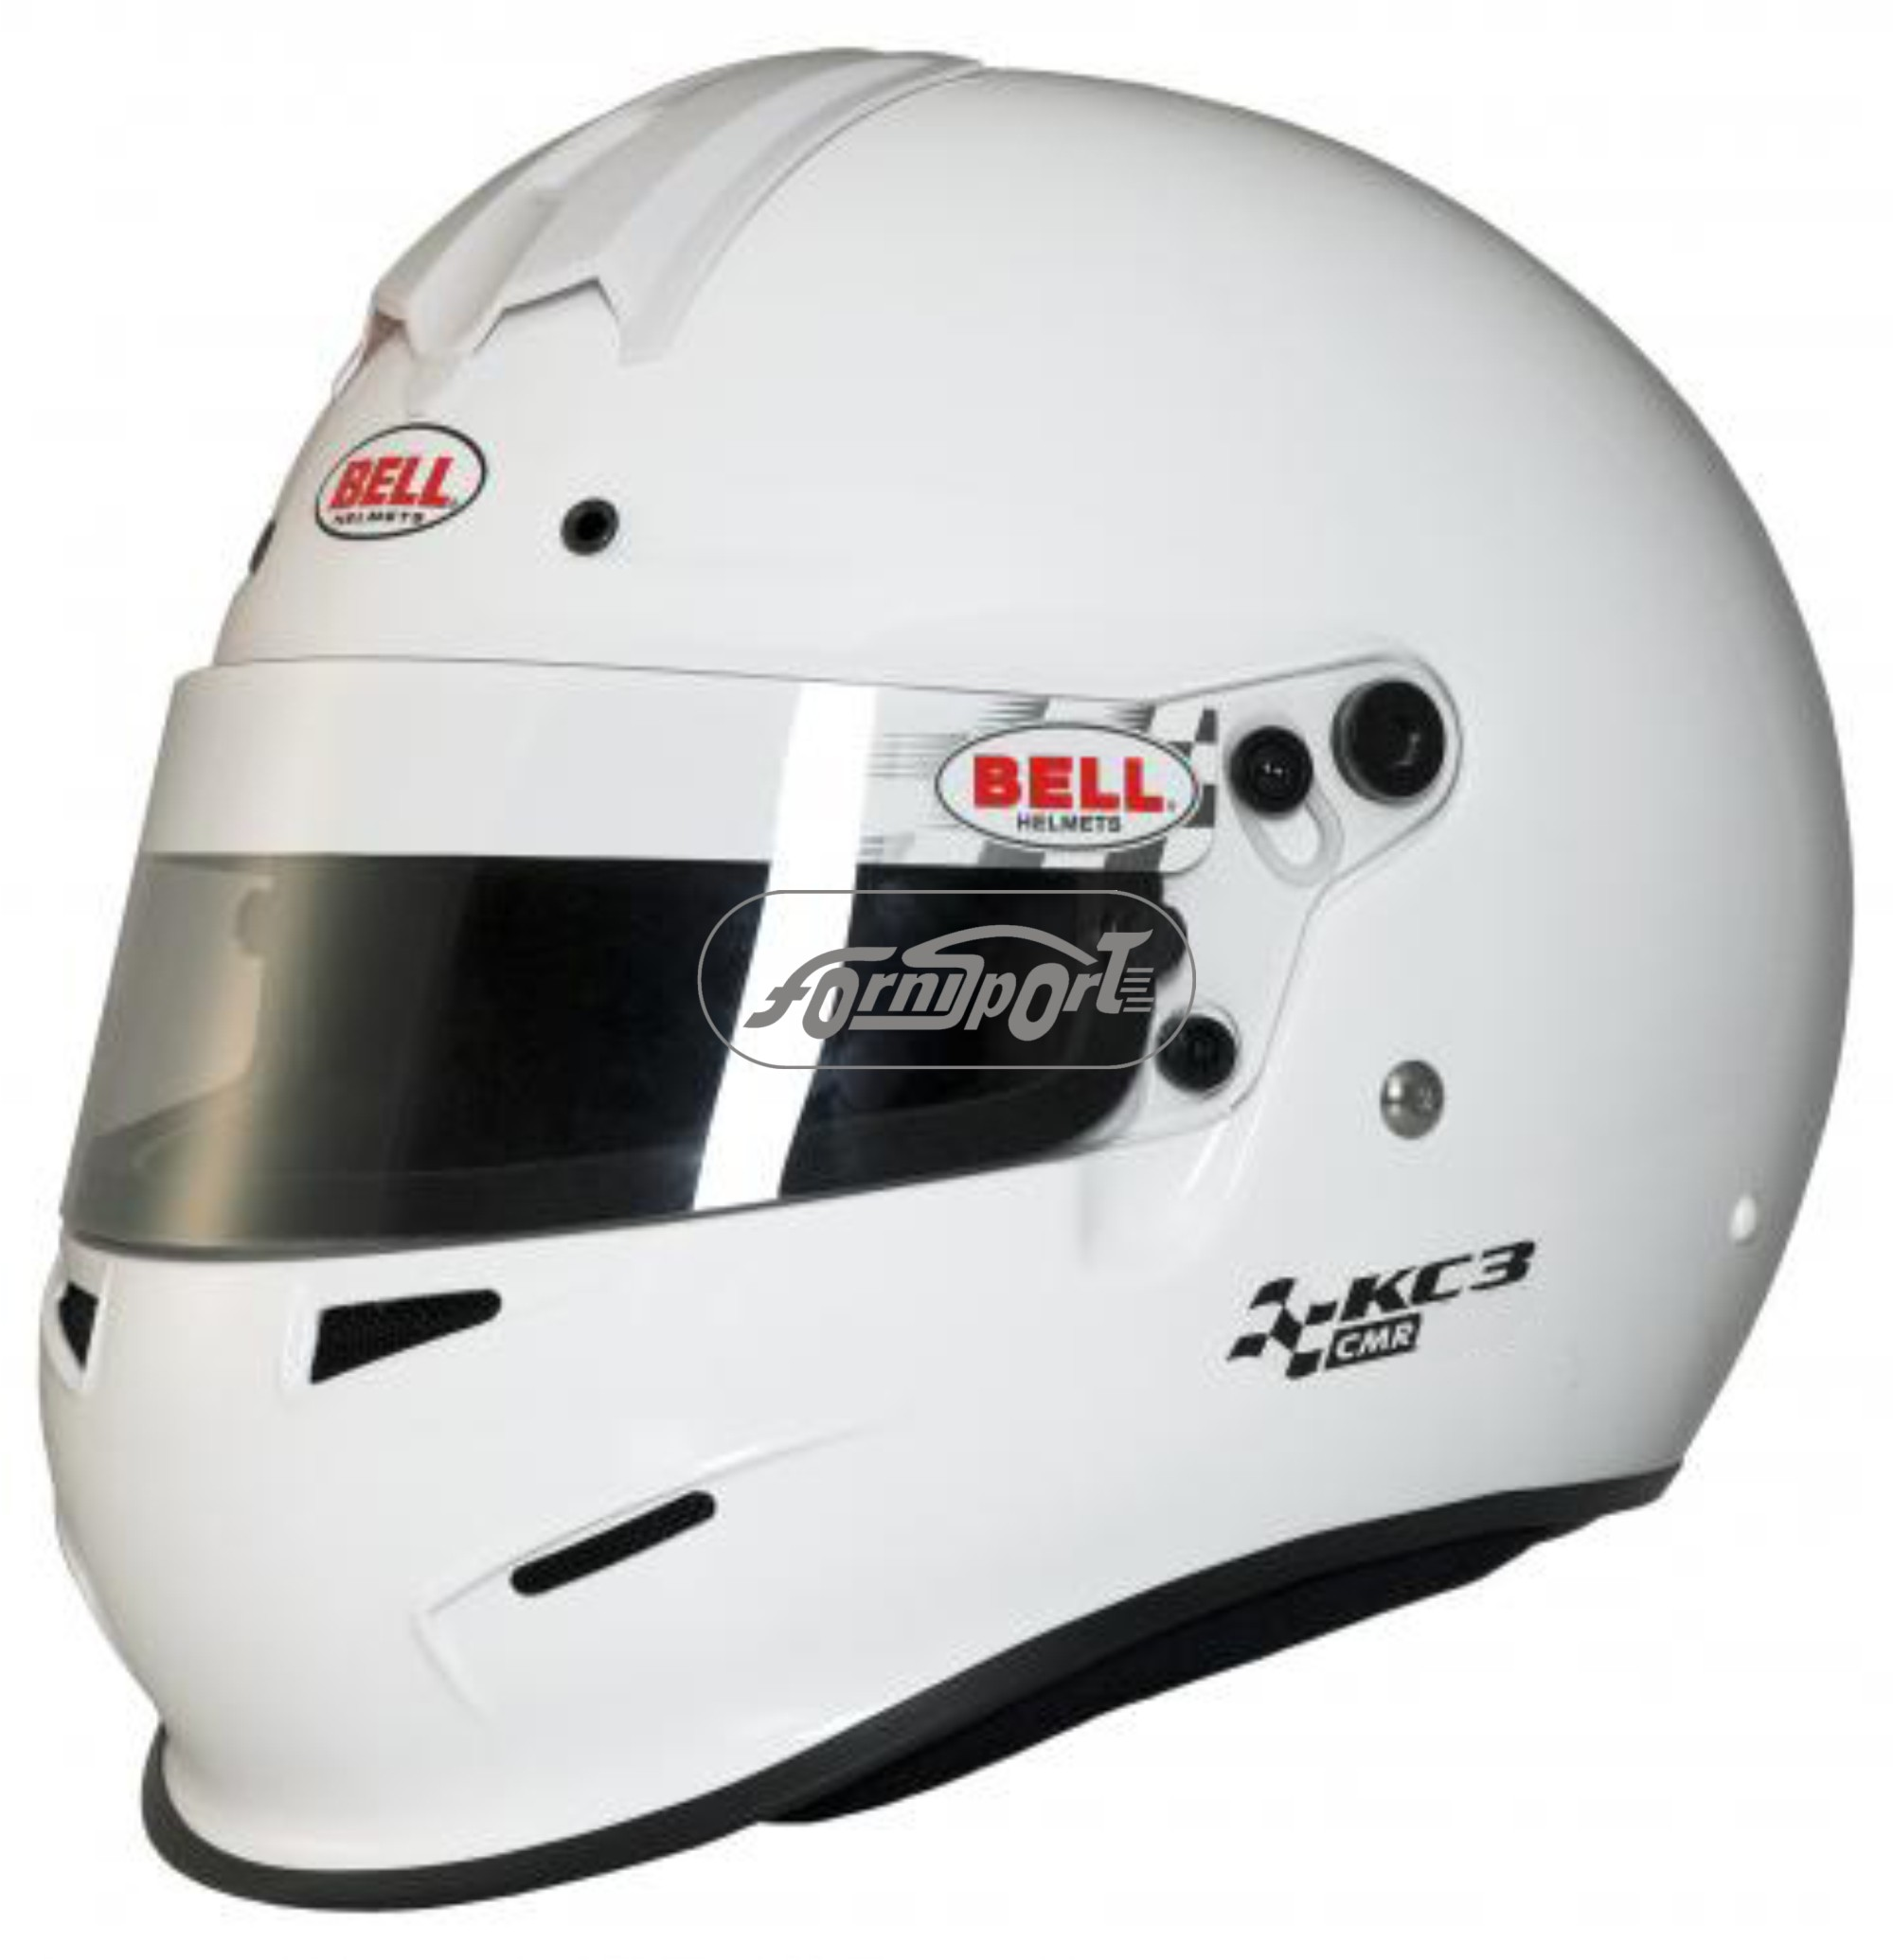 Casco FIA BELL Integral Hom KC3 T57